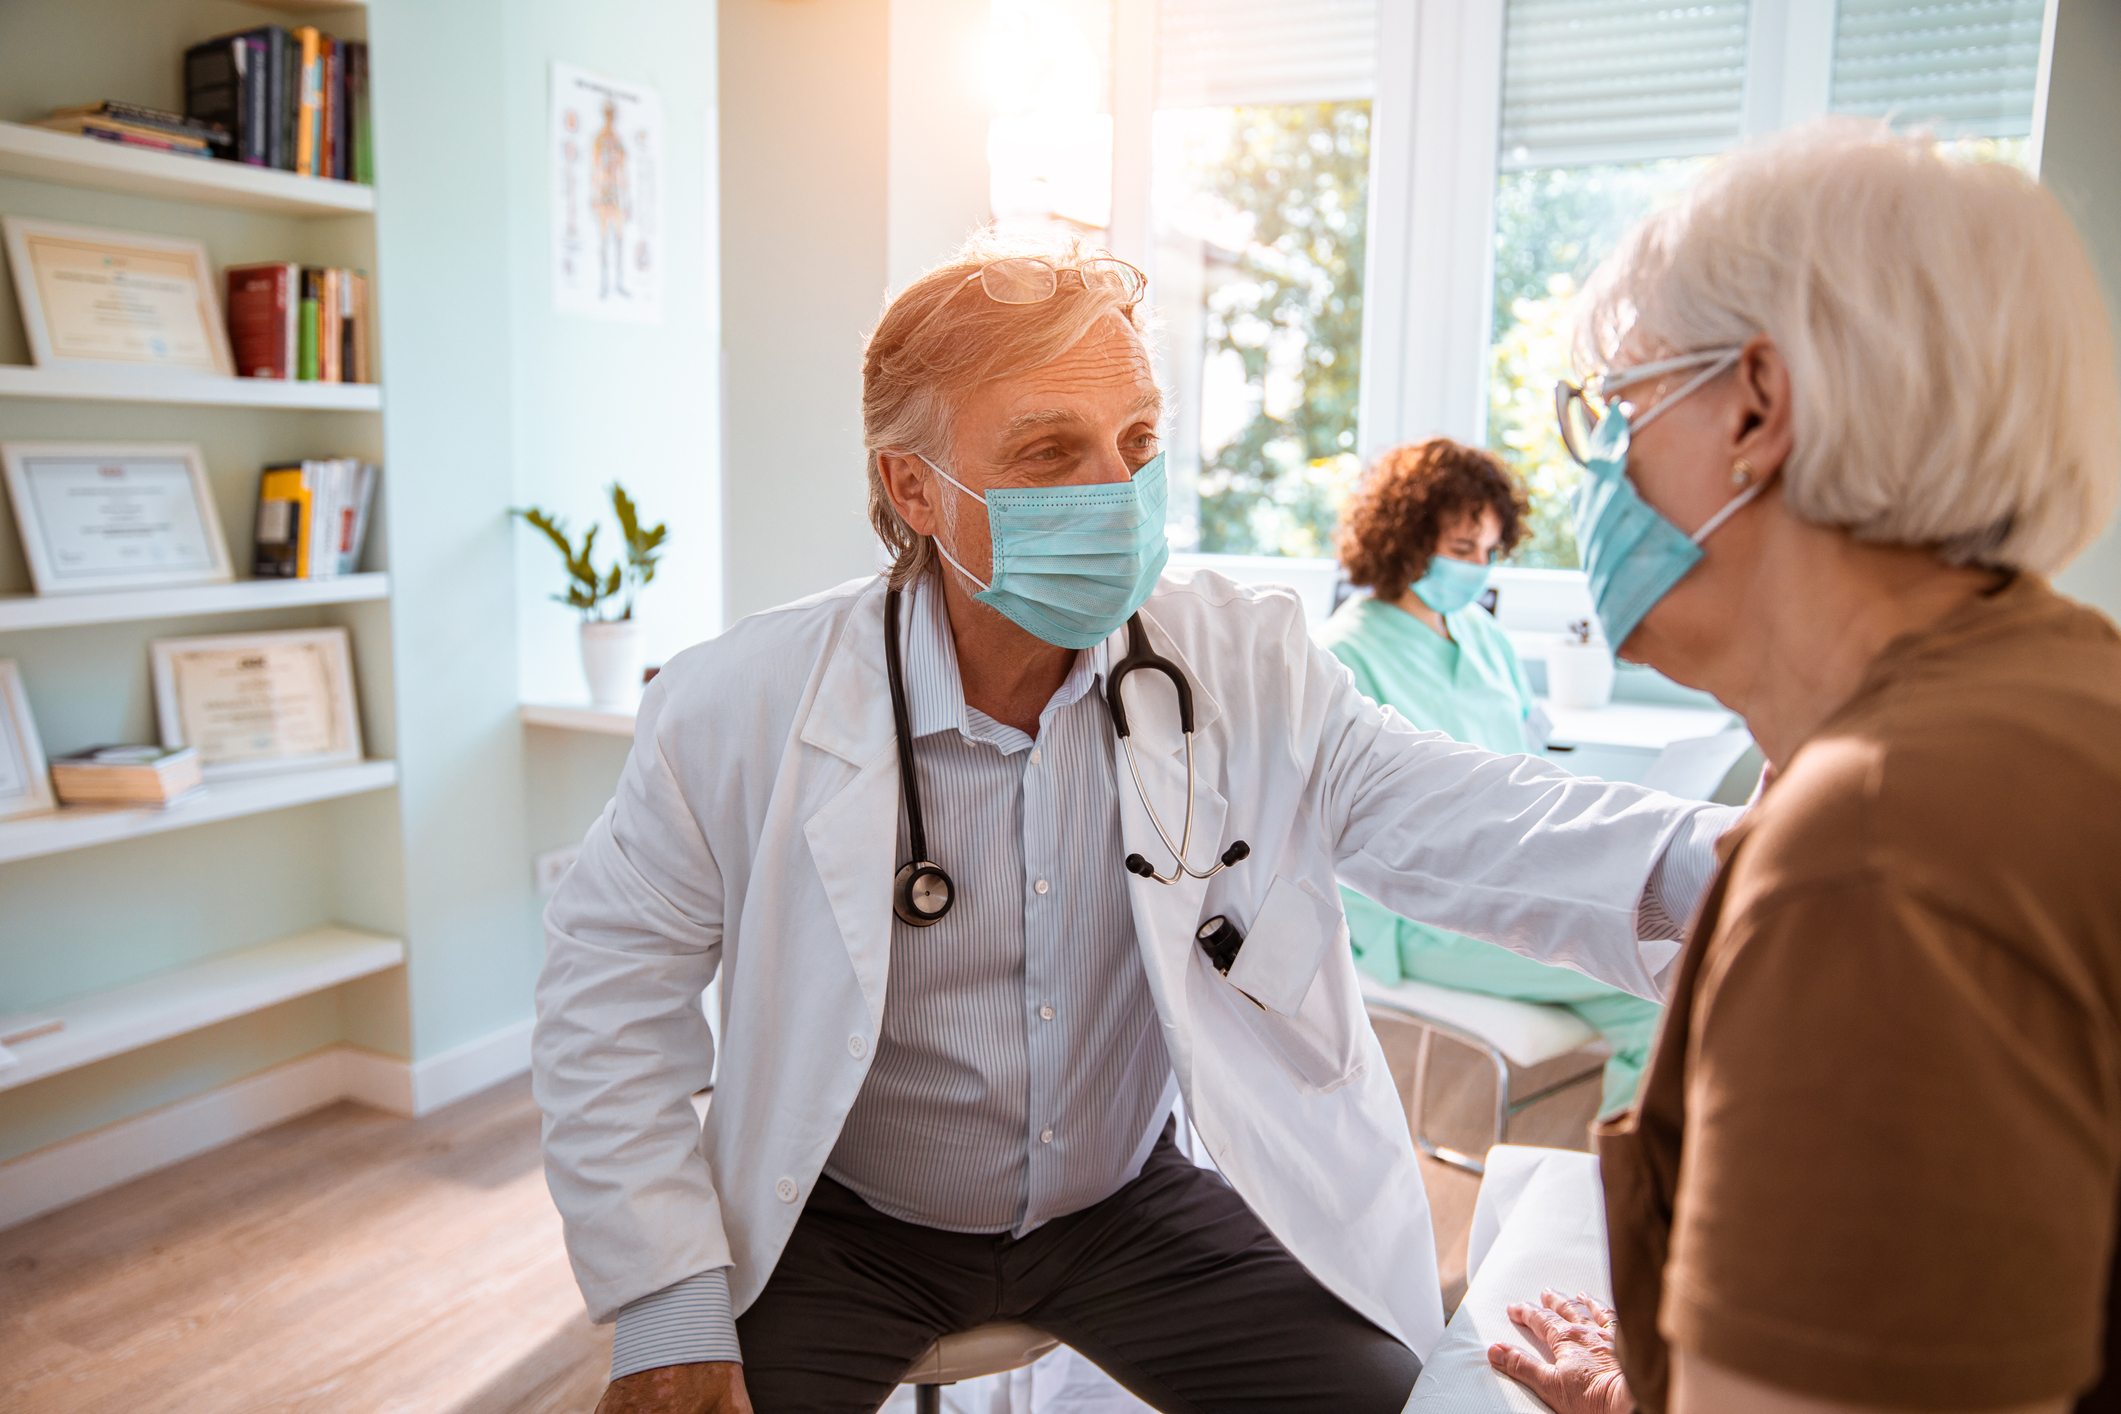 Practices Facing 'Existential' Threats, Uncertainty About Future of Primary Care, Survey Finds